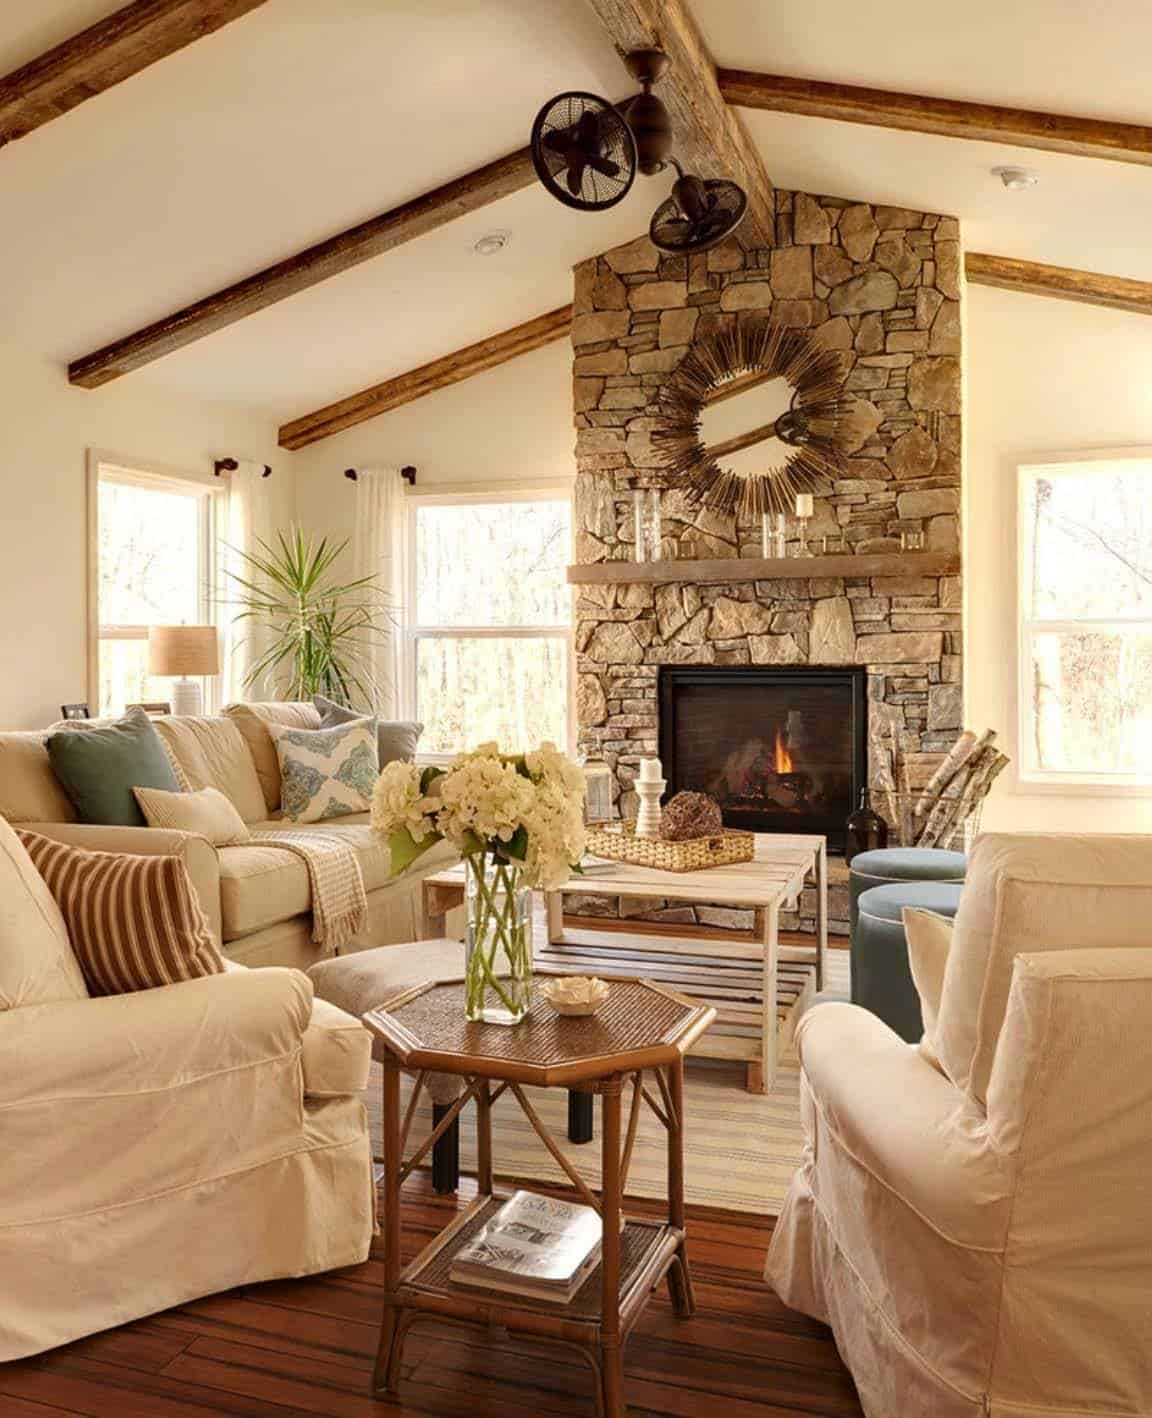 Cozy Fireplace Ideas-21-1 Kindesign